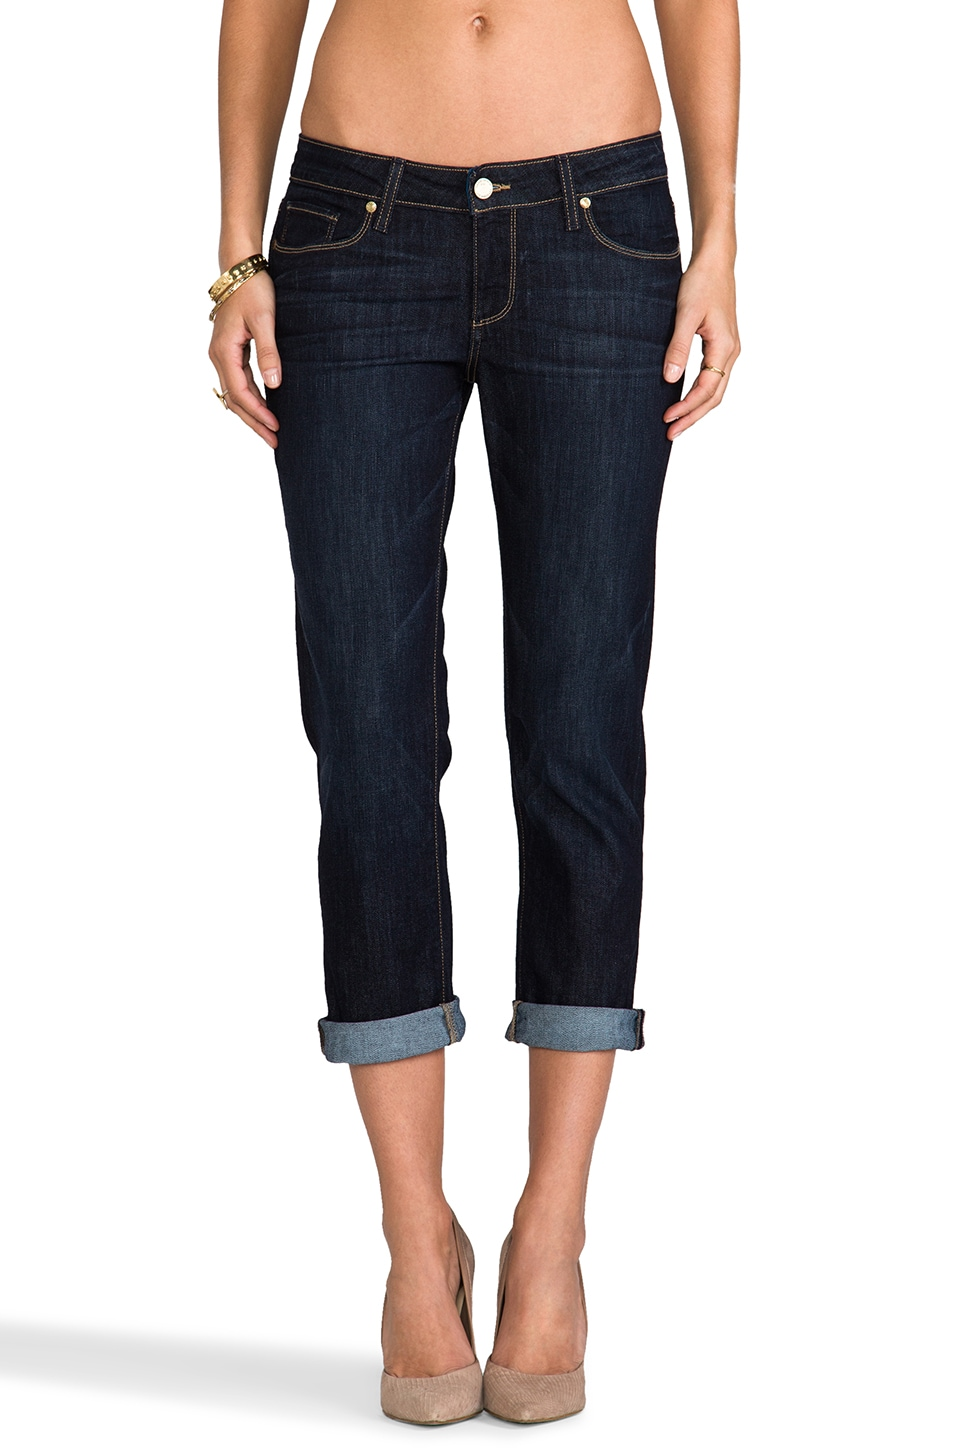 Paige Denim Jimmy Jimmy Crop in Dean